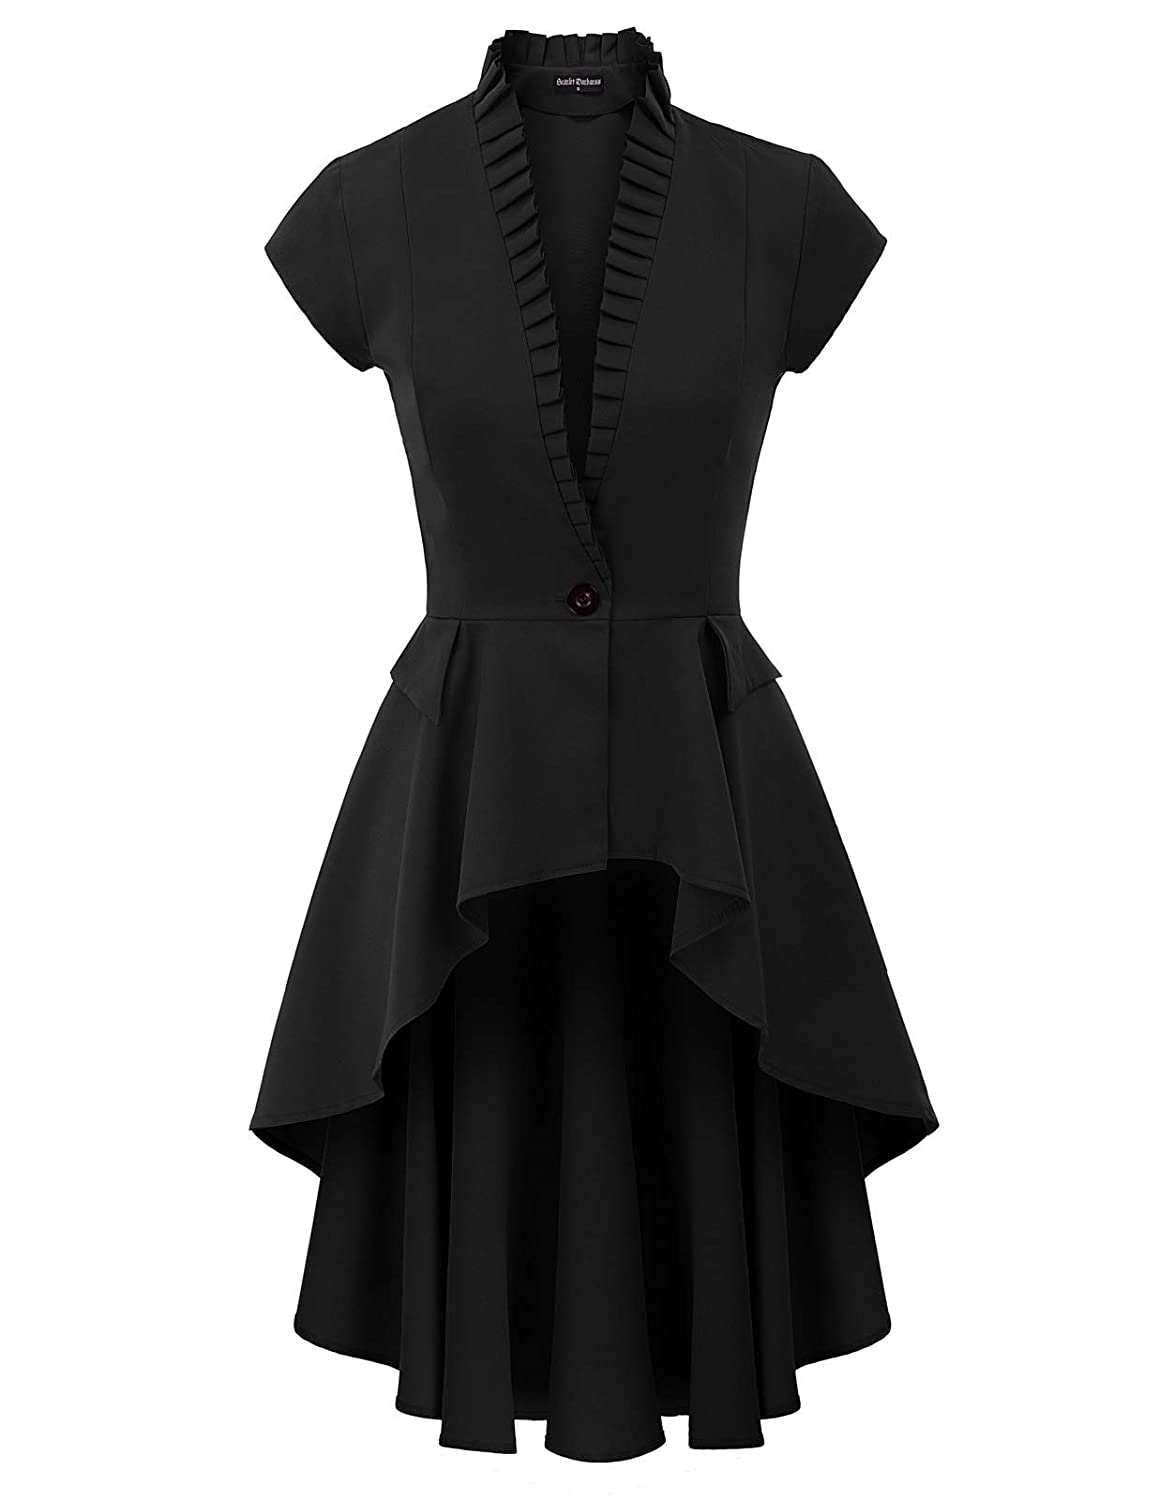 Victorian Clothing, Costumes & 1800s Fashion Womens Gothic Steampunk Jacket Long Victorian Waistcoat Jacket Top $37.99 AT vintagedancer.com